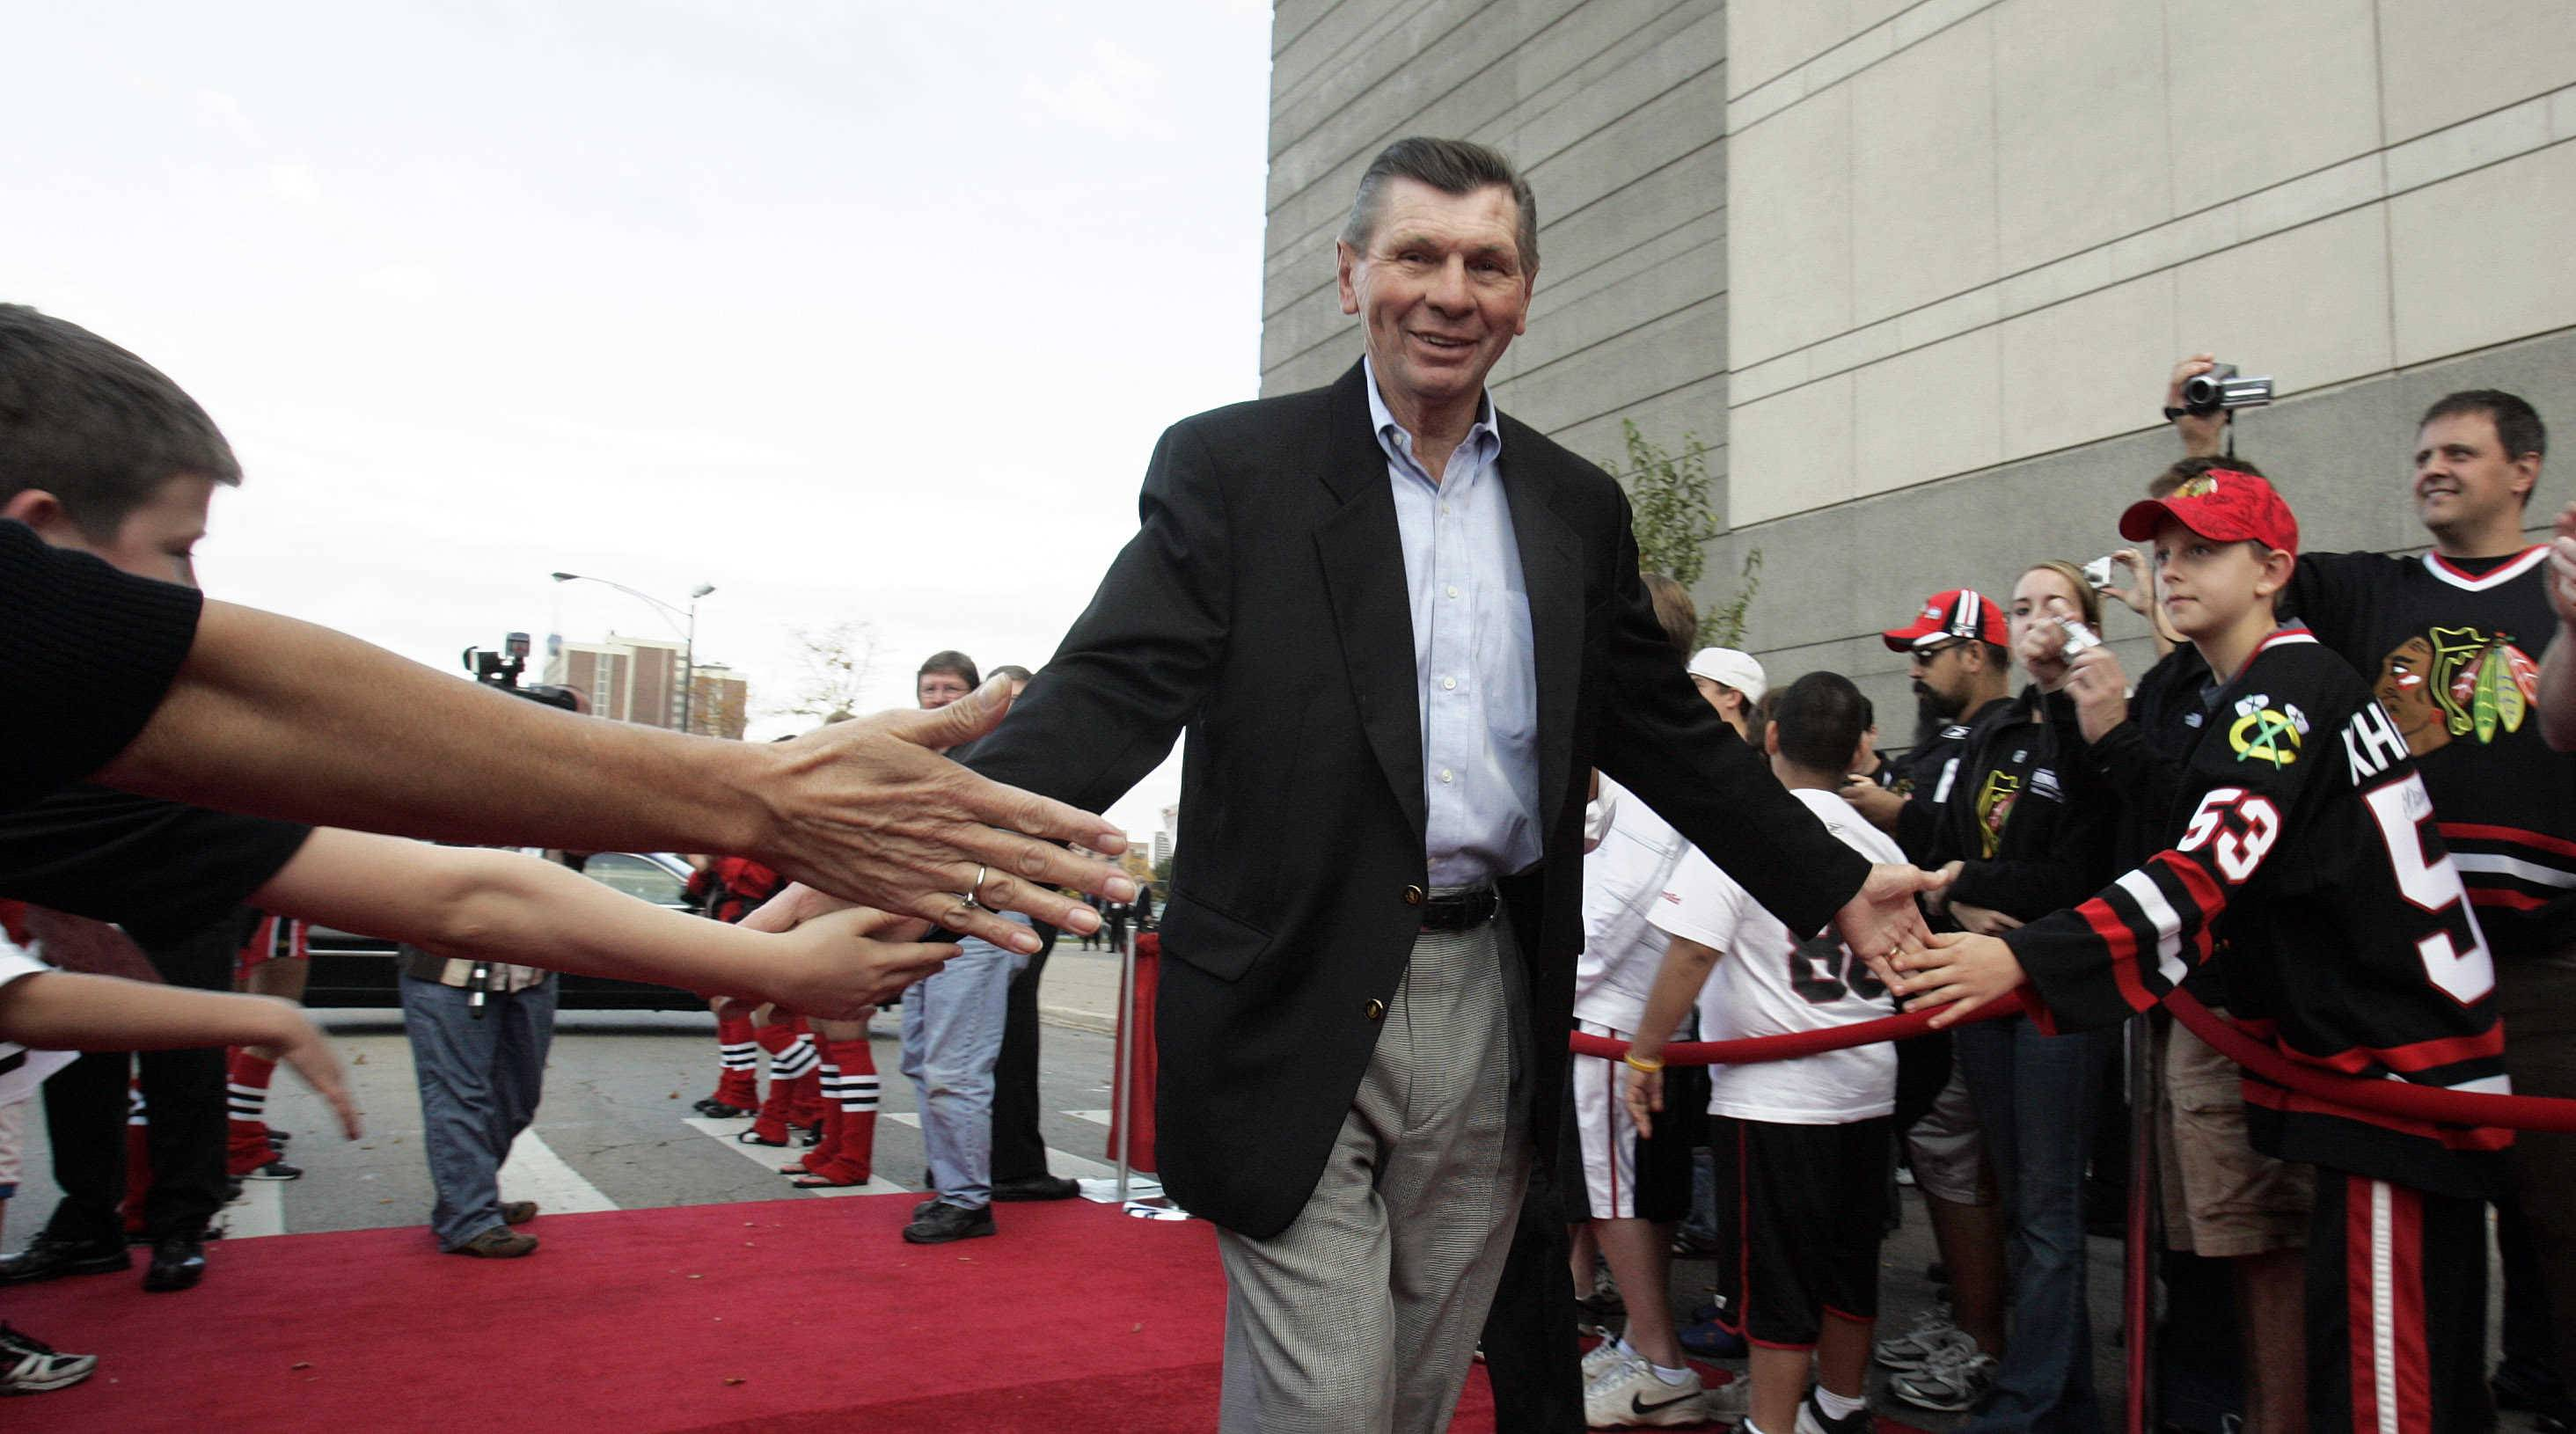 STEVE LUNDY/slundy@dailyherald.com Chicago Blackhawks legend Stan Mikita high-fives fans as he comes down the red carpet during a ceremony prior to the home opener at the United Center in 2008.